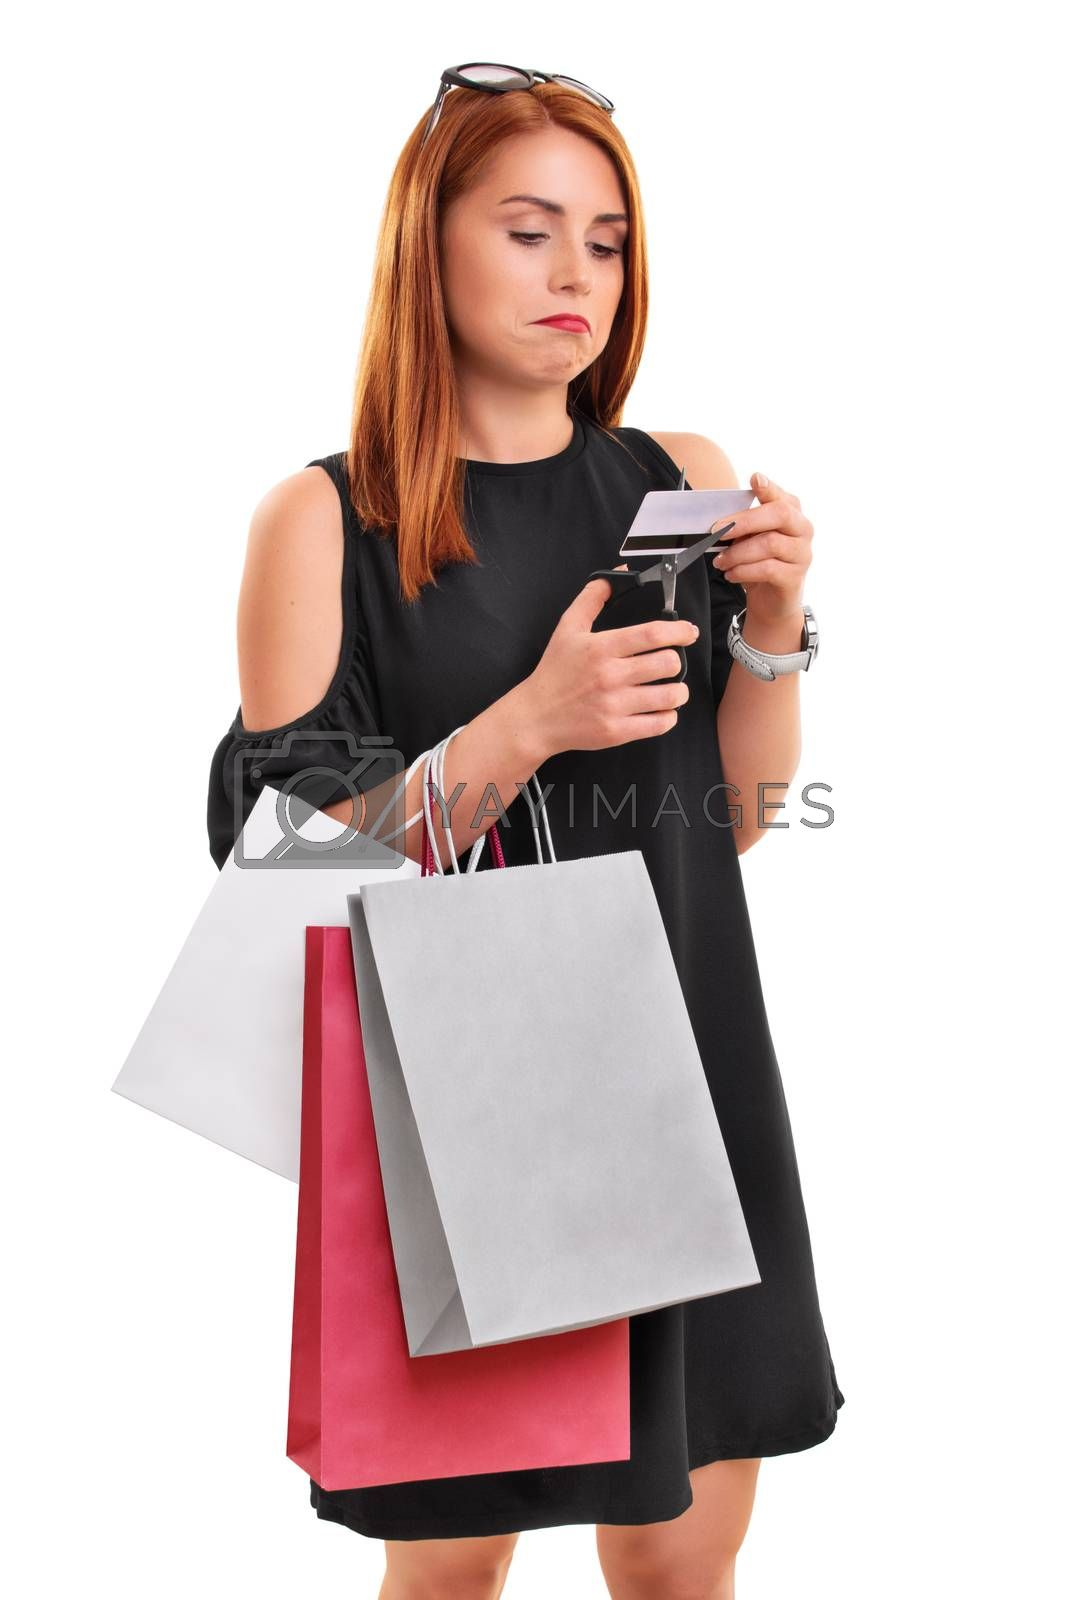 Portrait of a beautiful young girl in a stylish dress holing shopping bags cutting a credit card with scissors, isolated on a white background. Overspending concept. Financial debt concept.